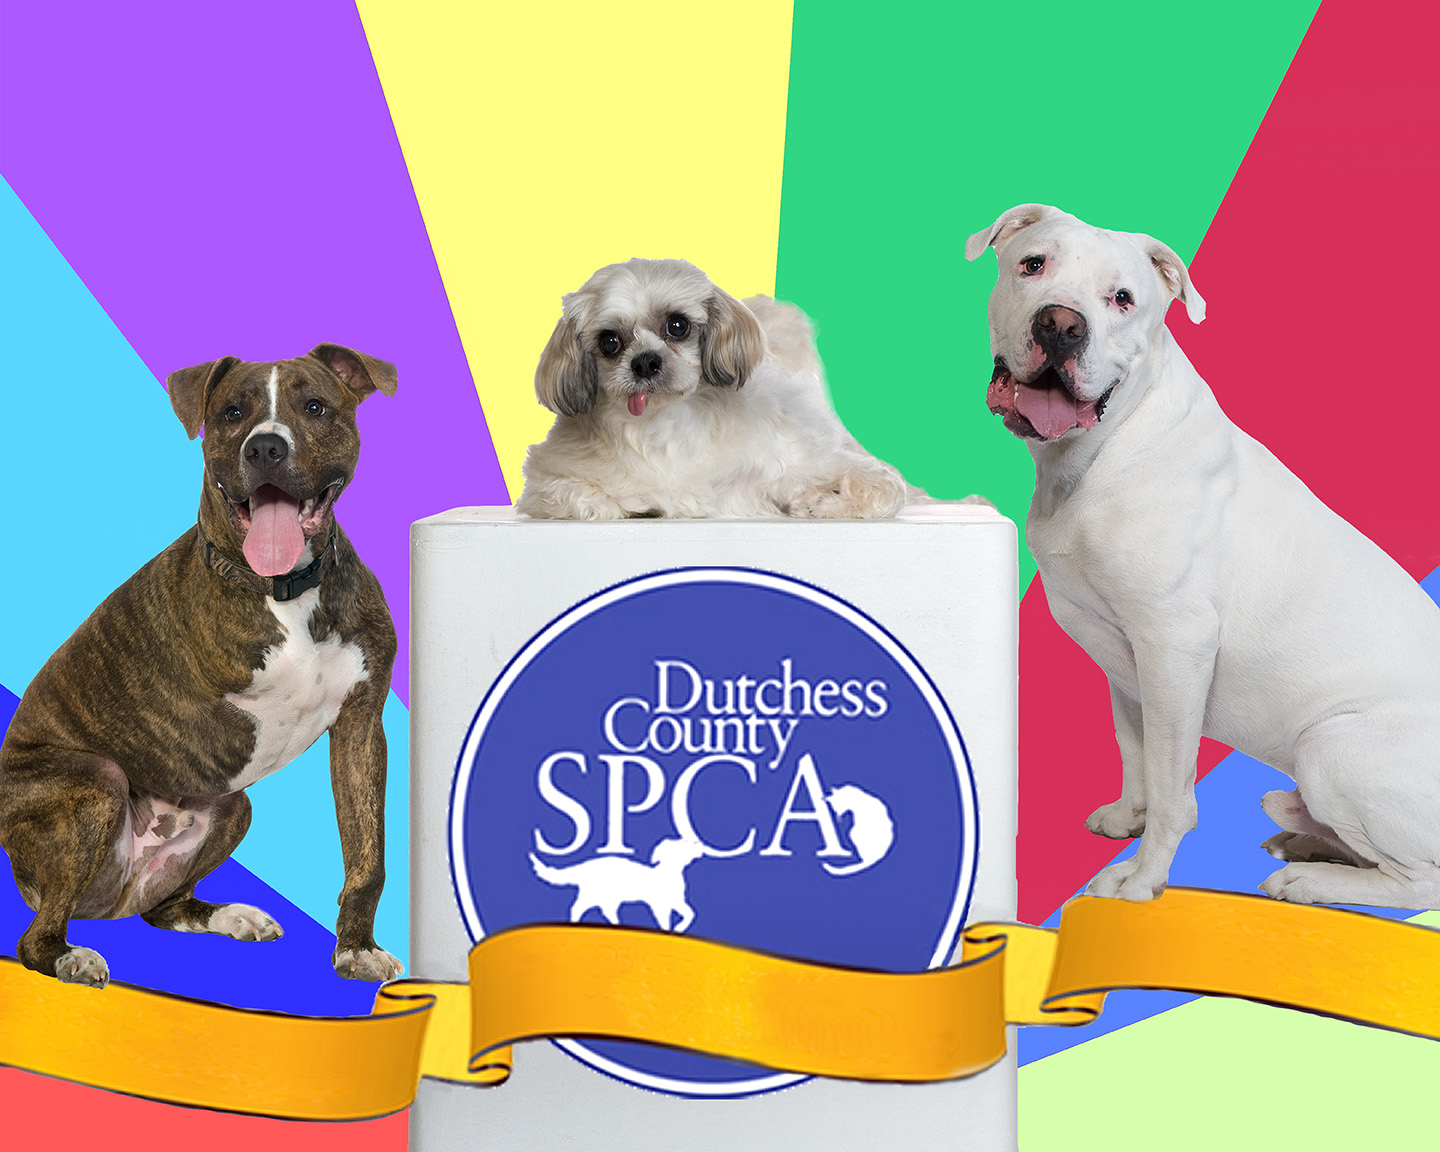 From left: Dodger, Jade and Thor are the 2013 Dutchess County SPCA Paws in the Park Petwalk Mascots. This trio of Super Alumni Friends overcame disabilities and now lead full lives with their adoptive families. Image donated by On Location Studios in Poughkeepsie.